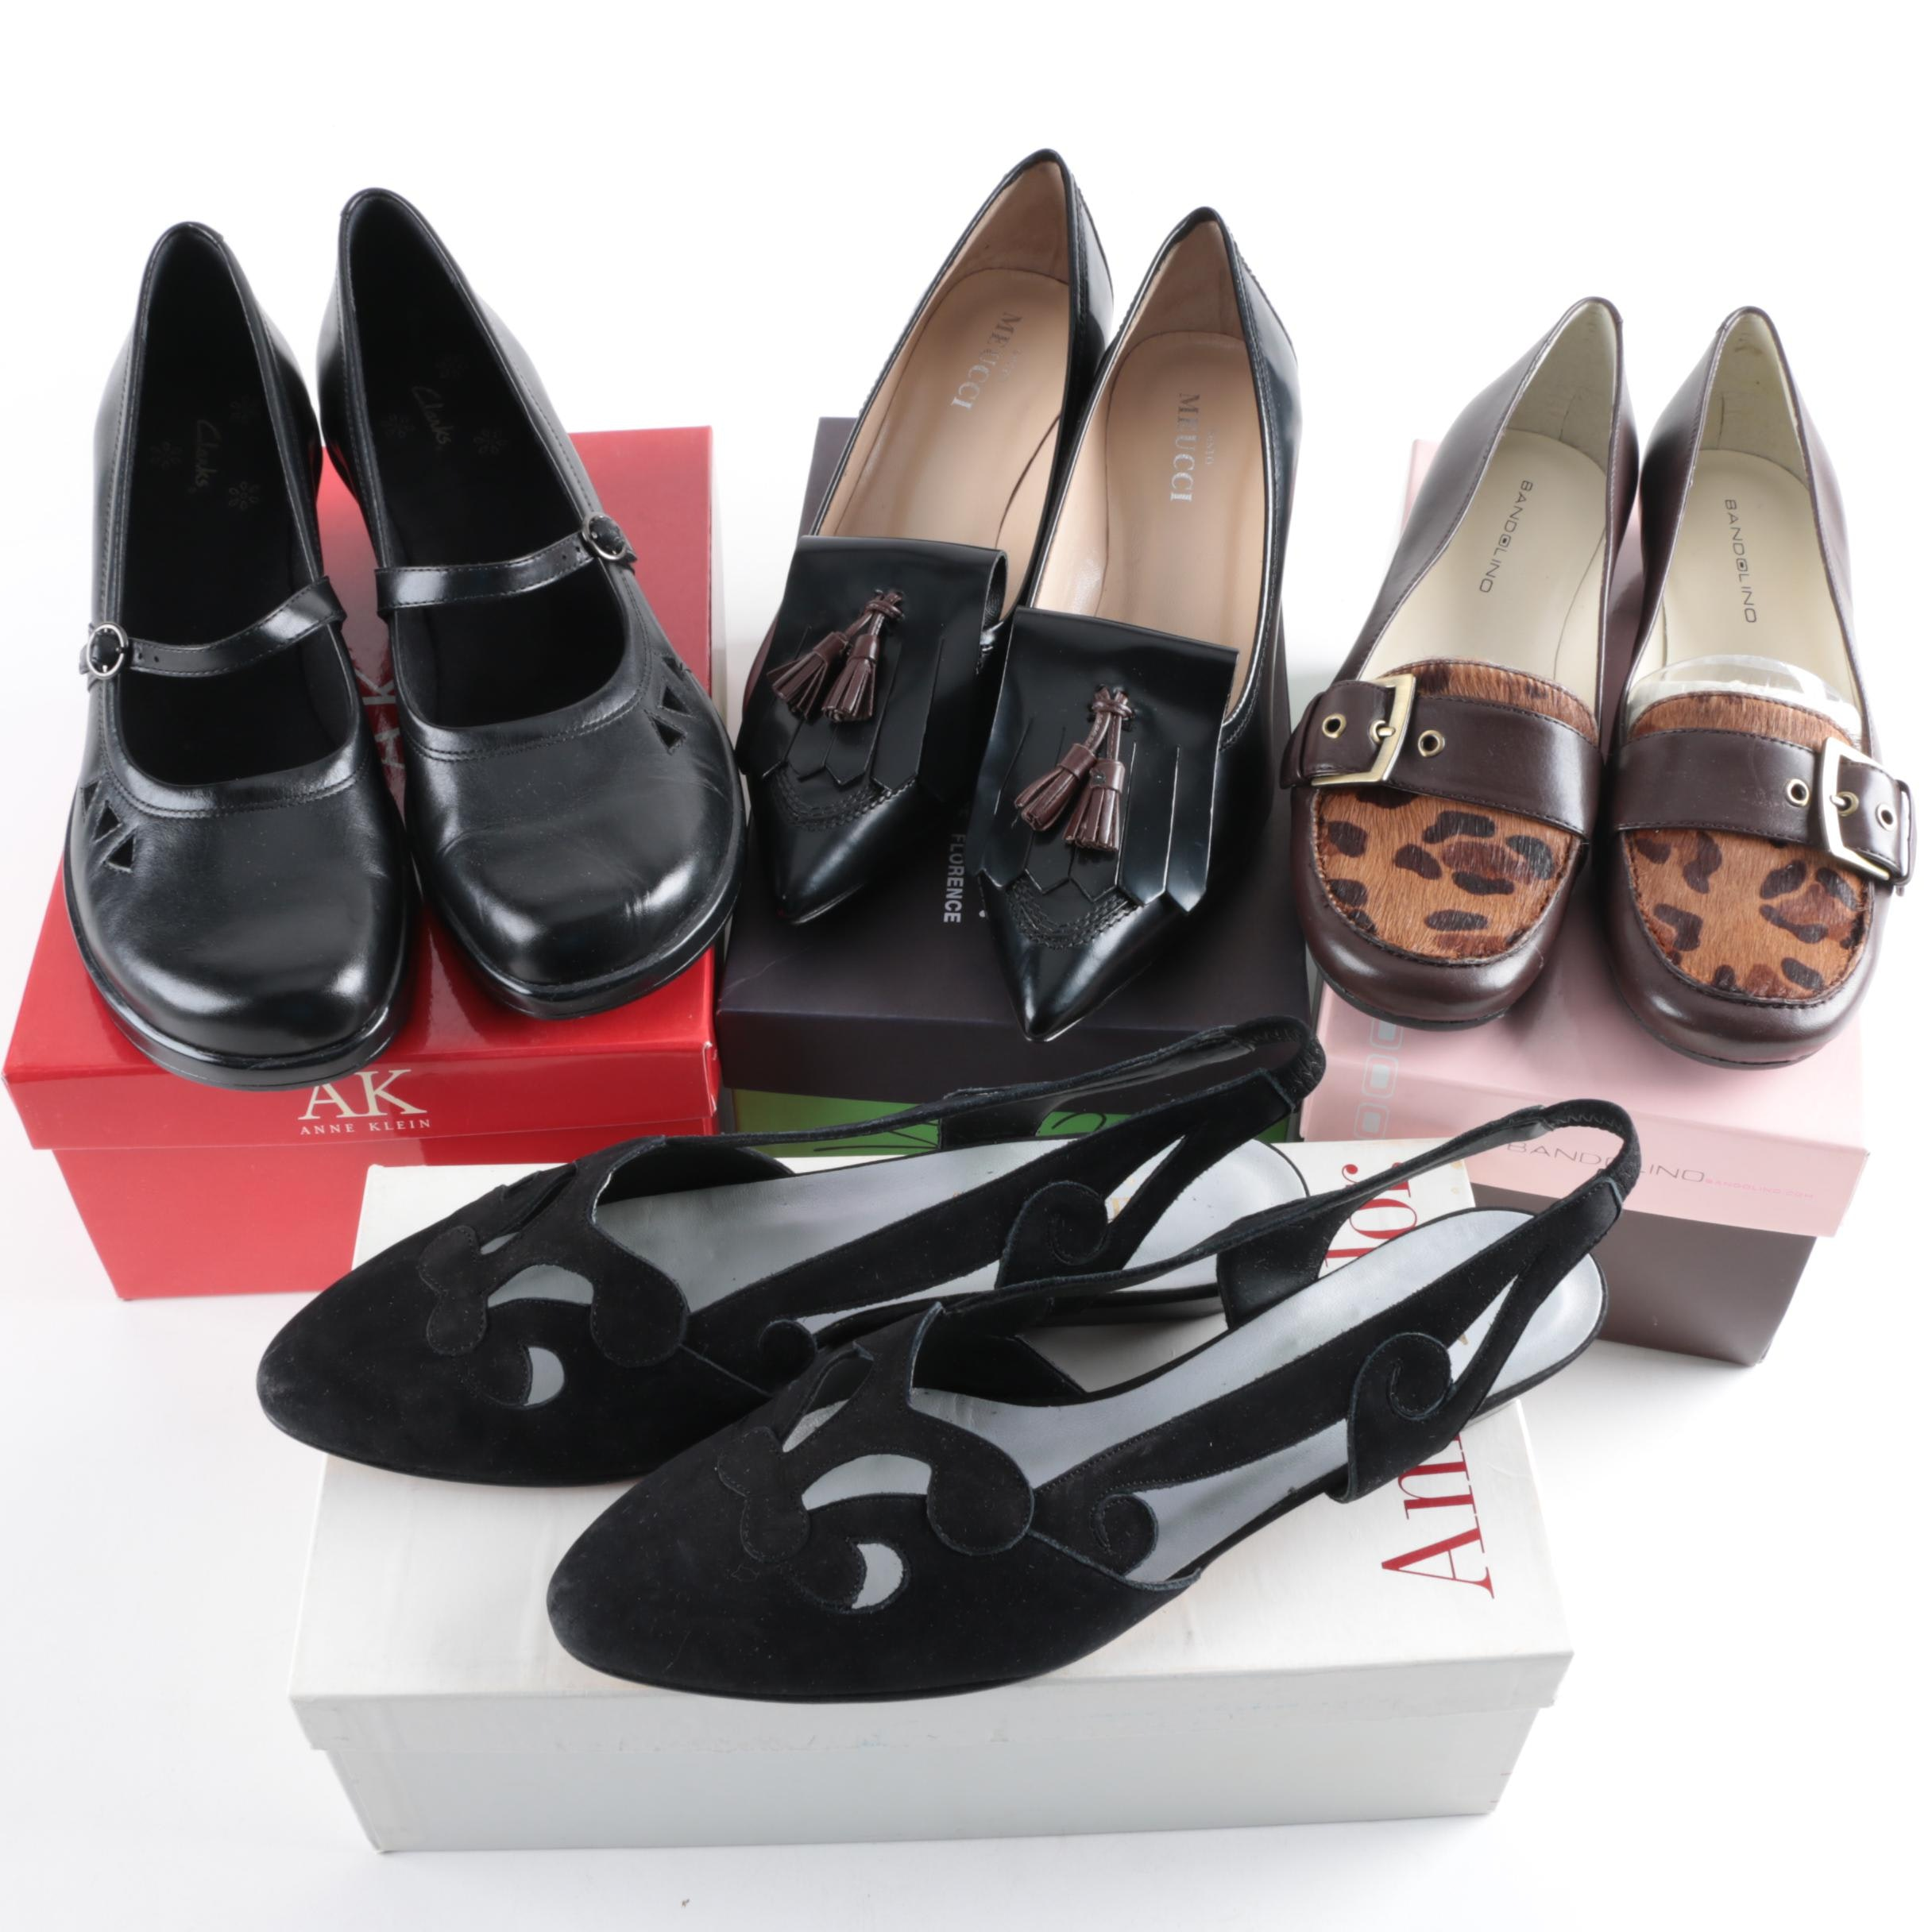 Four Pairs of Womens Shoes Including Sesto Meucci